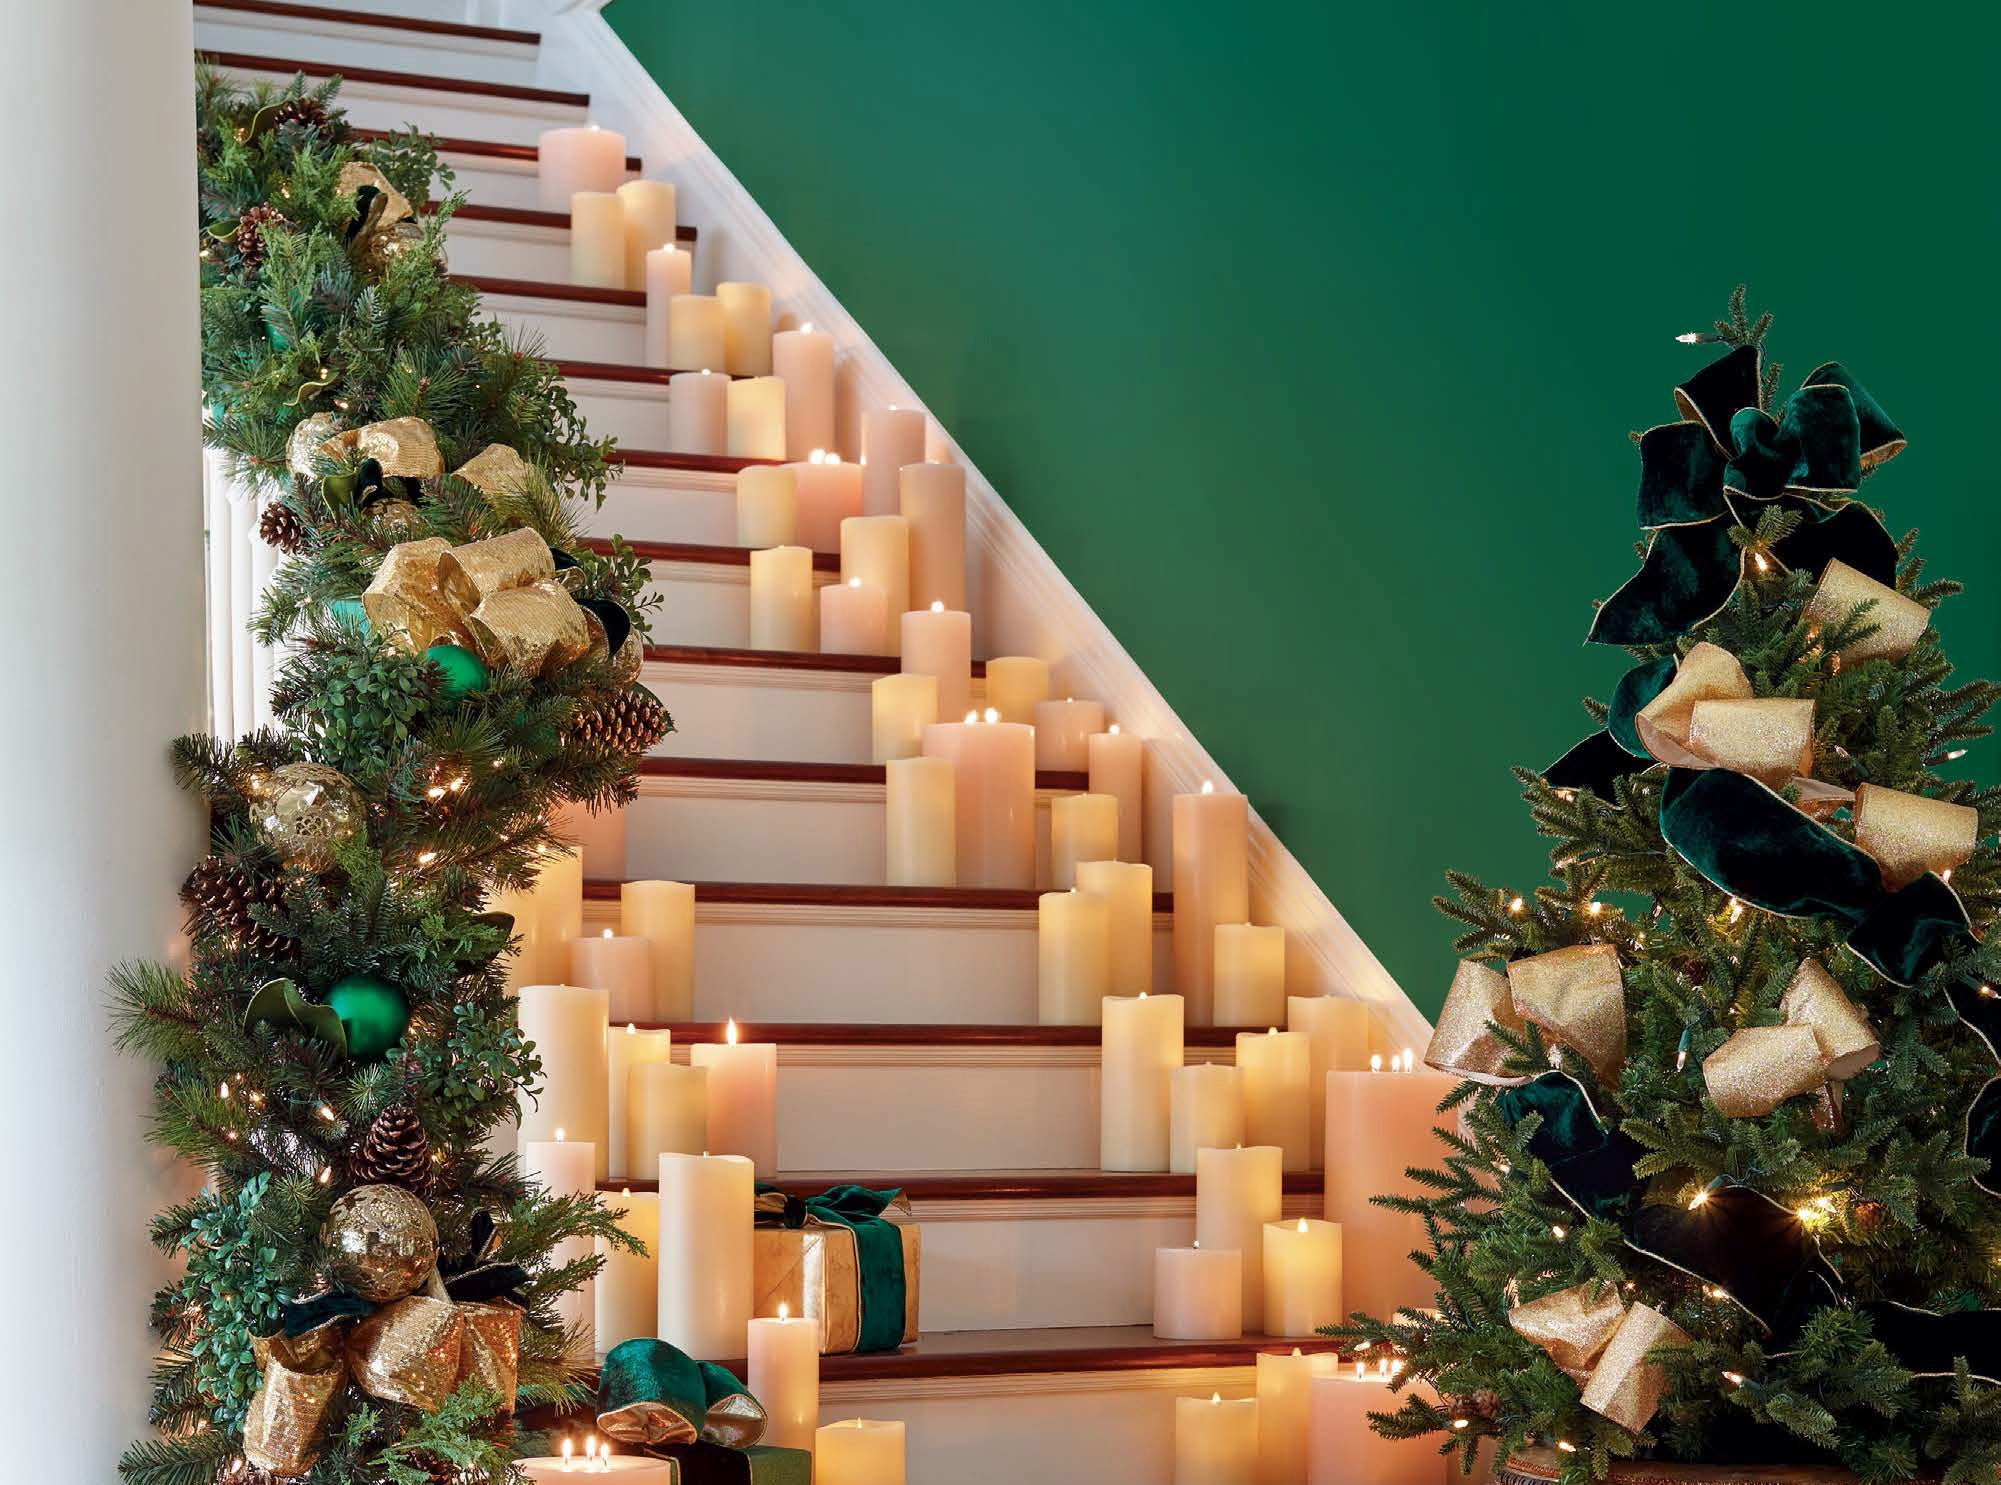 Dozens of flameless candles dreamily line a staircase and a lush garland from Frontgate is draped over the rail. There are large emerald and gold balls, shimmery metallic ribbons, gold-edged forest green velvet ribbons and pine cones that add color, texture and radiance.